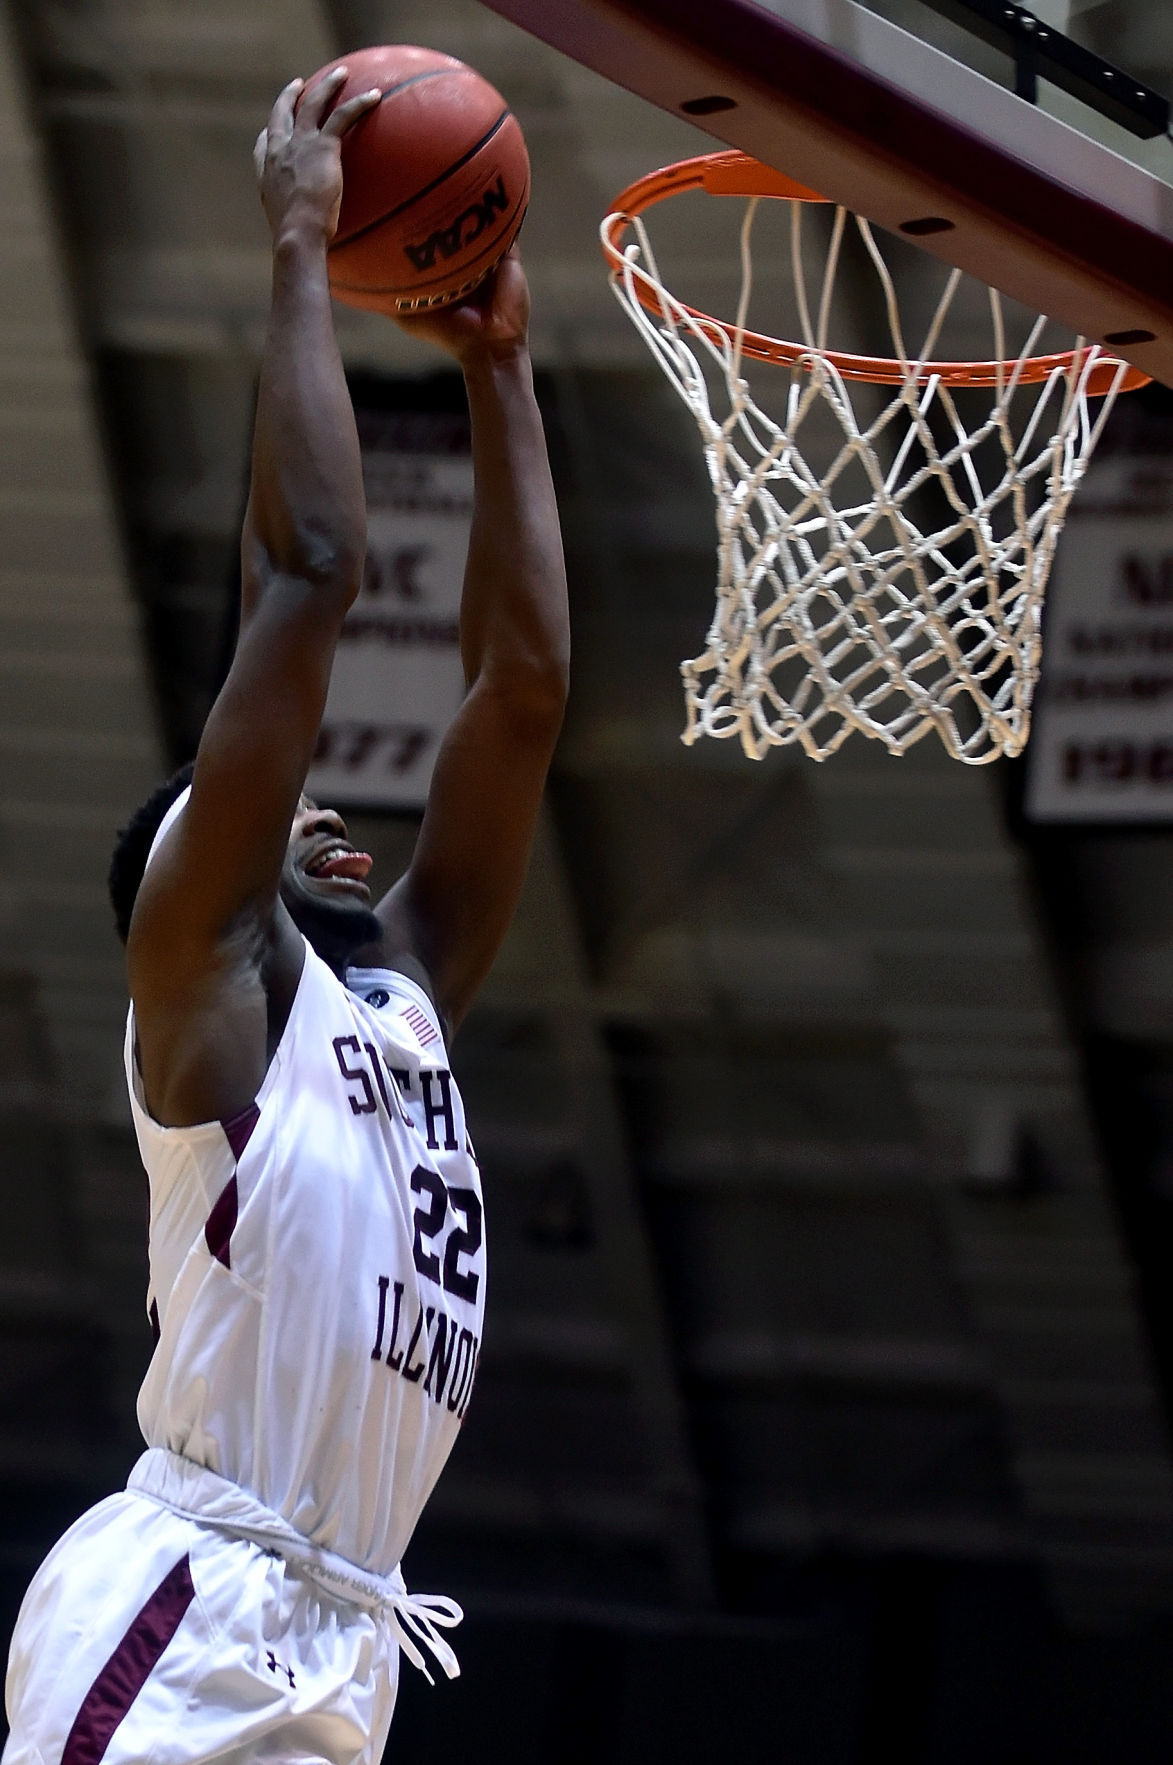 Salukis pull off improbable comeback, down Illinois State 74-70